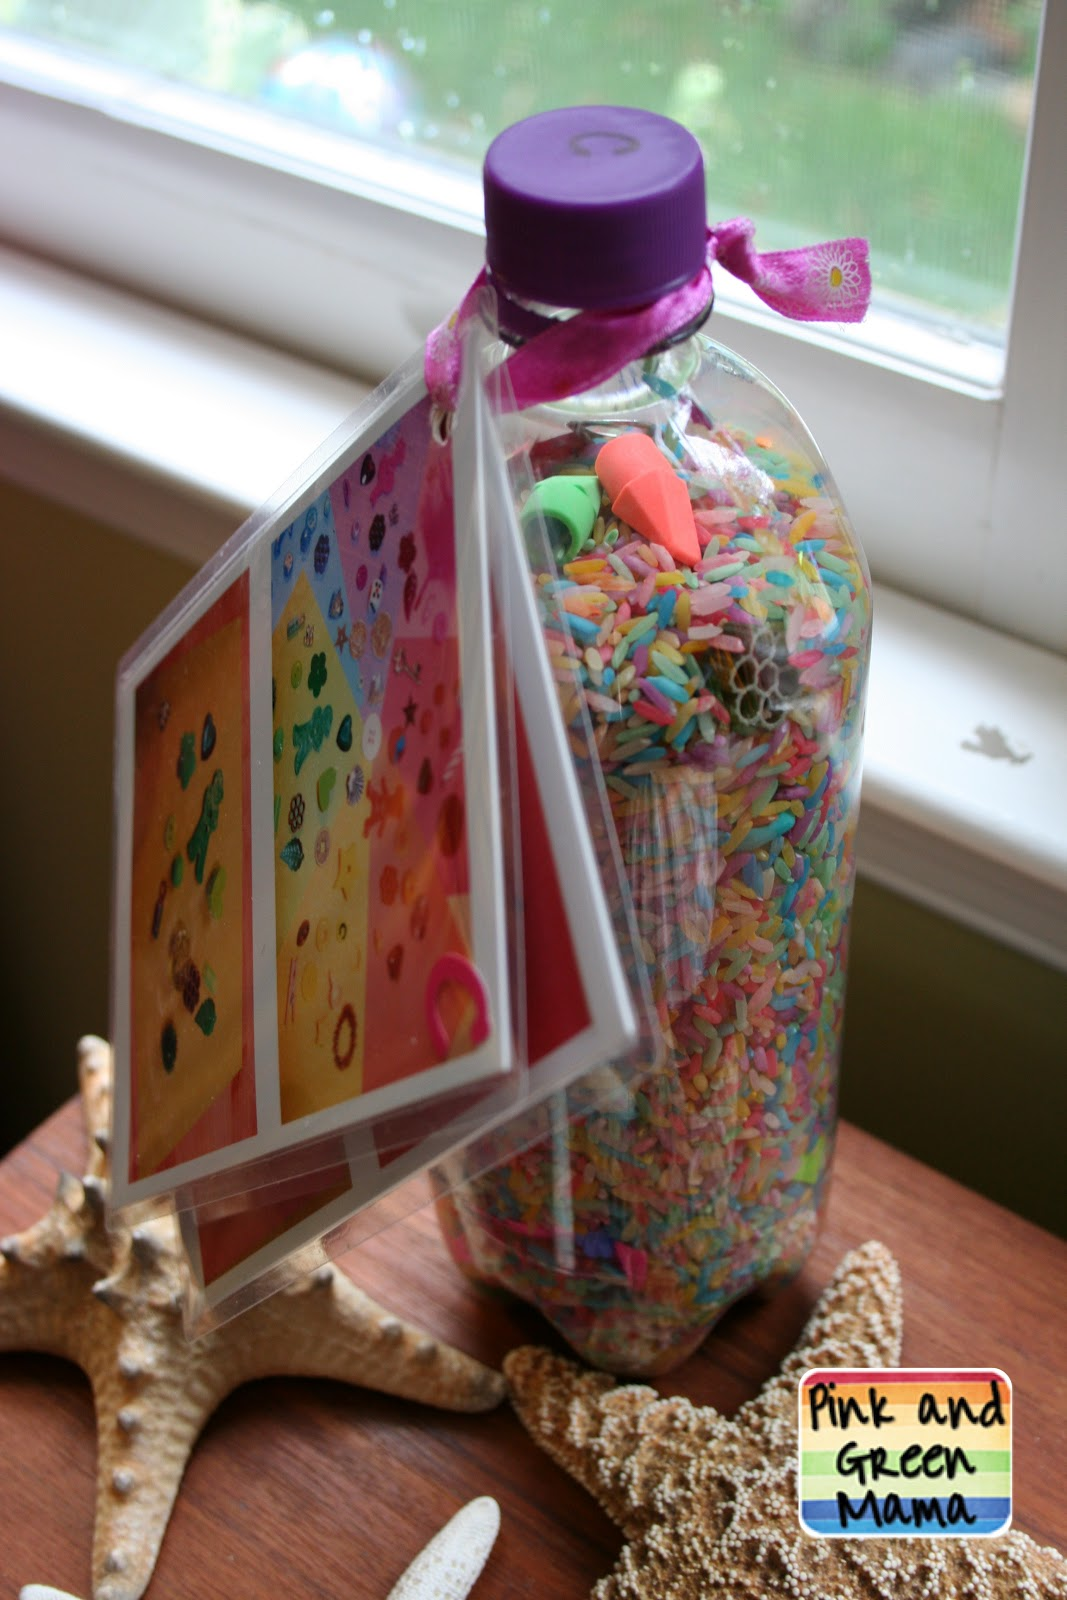 Pink And Green Mama Rainbow Themed Activities For St Patrick S Day Or Any Day